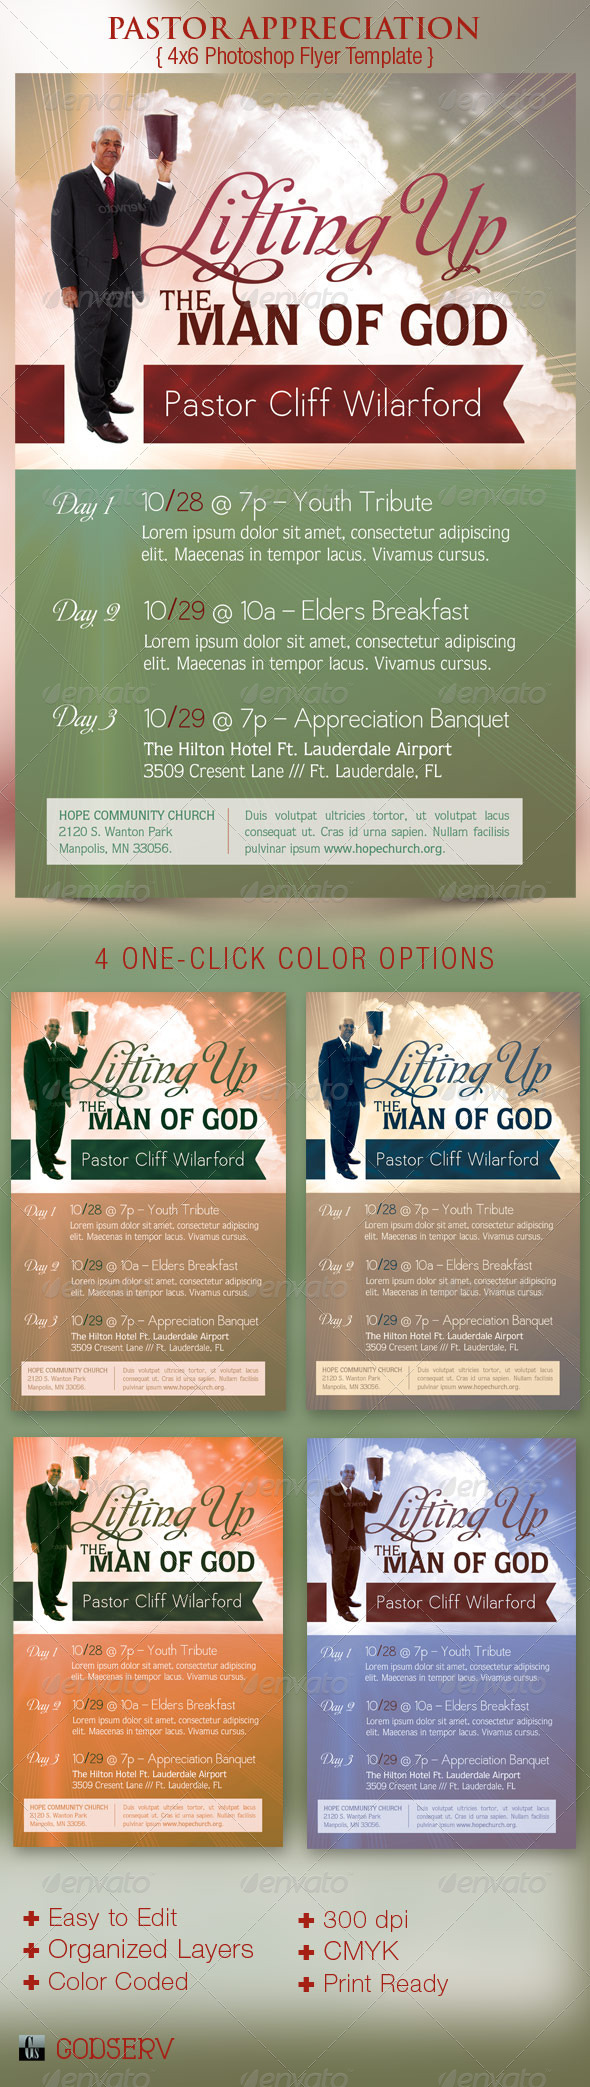 Pastor Appreciation Church Flyer Template - Church Flyers